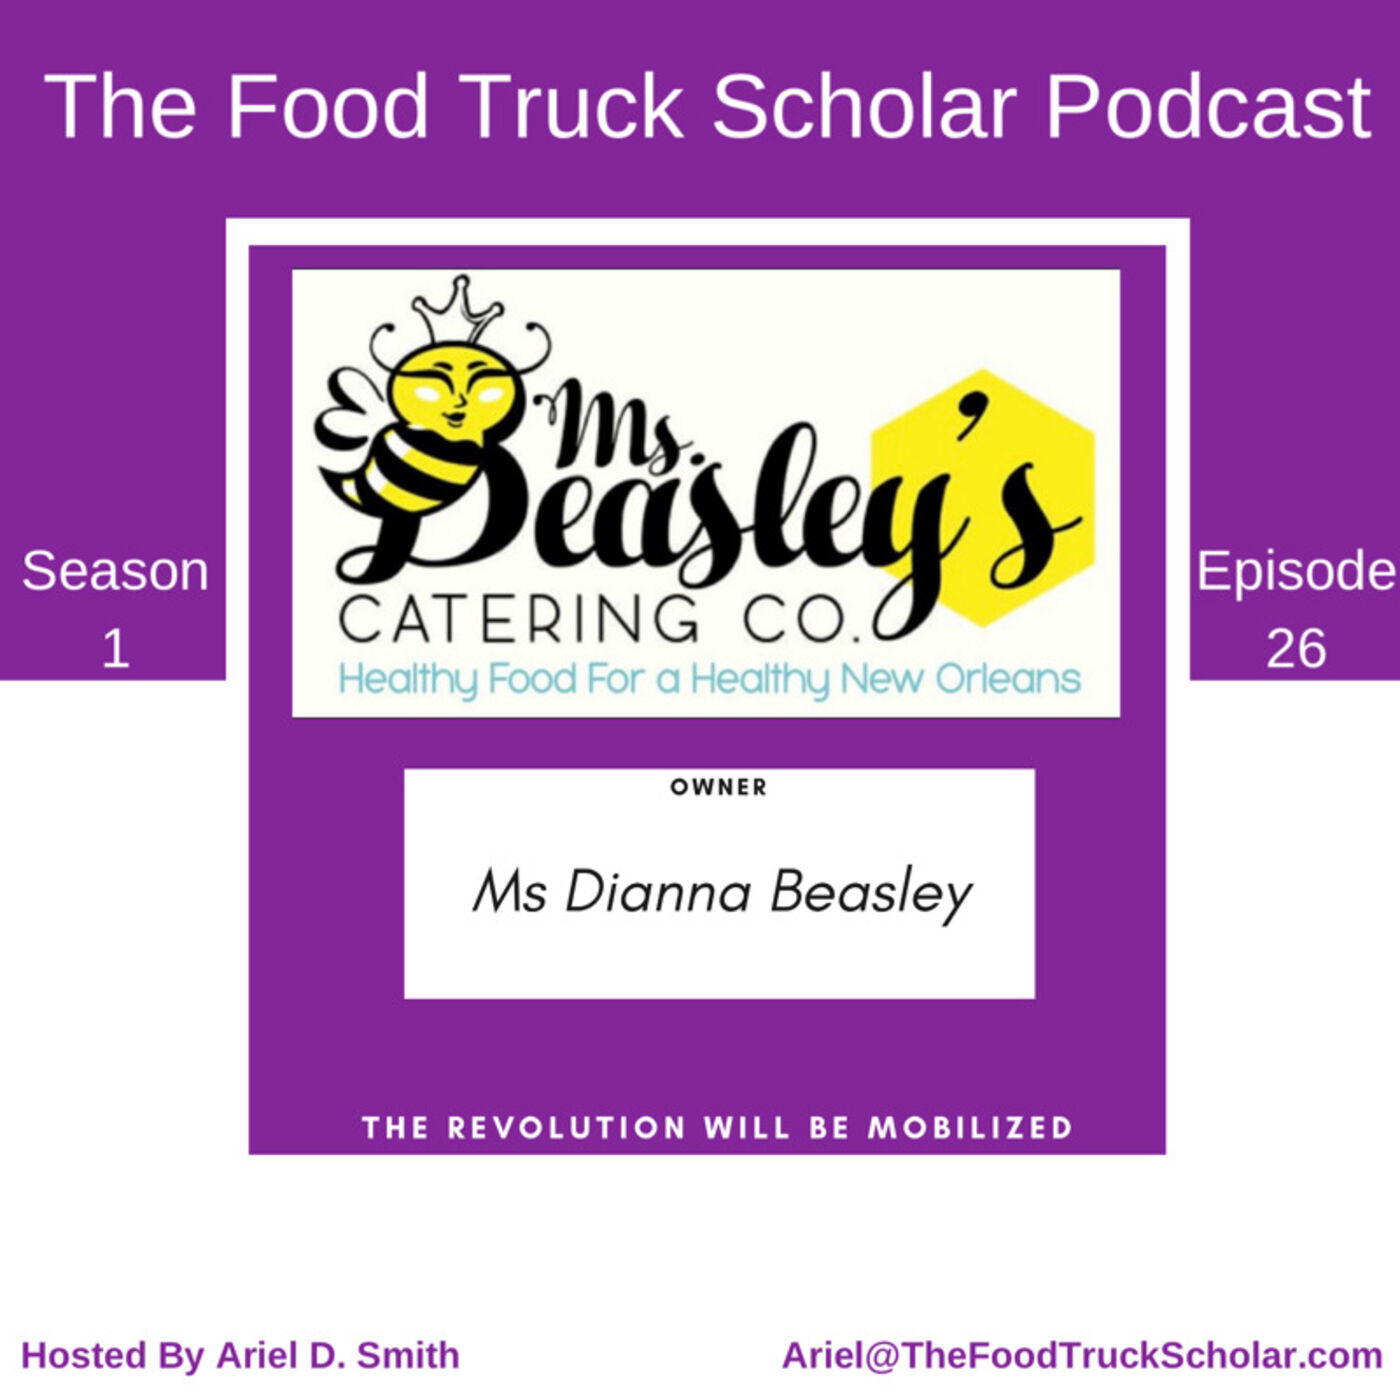 Ms Dianna Beasley: Ms Beasley's Catering